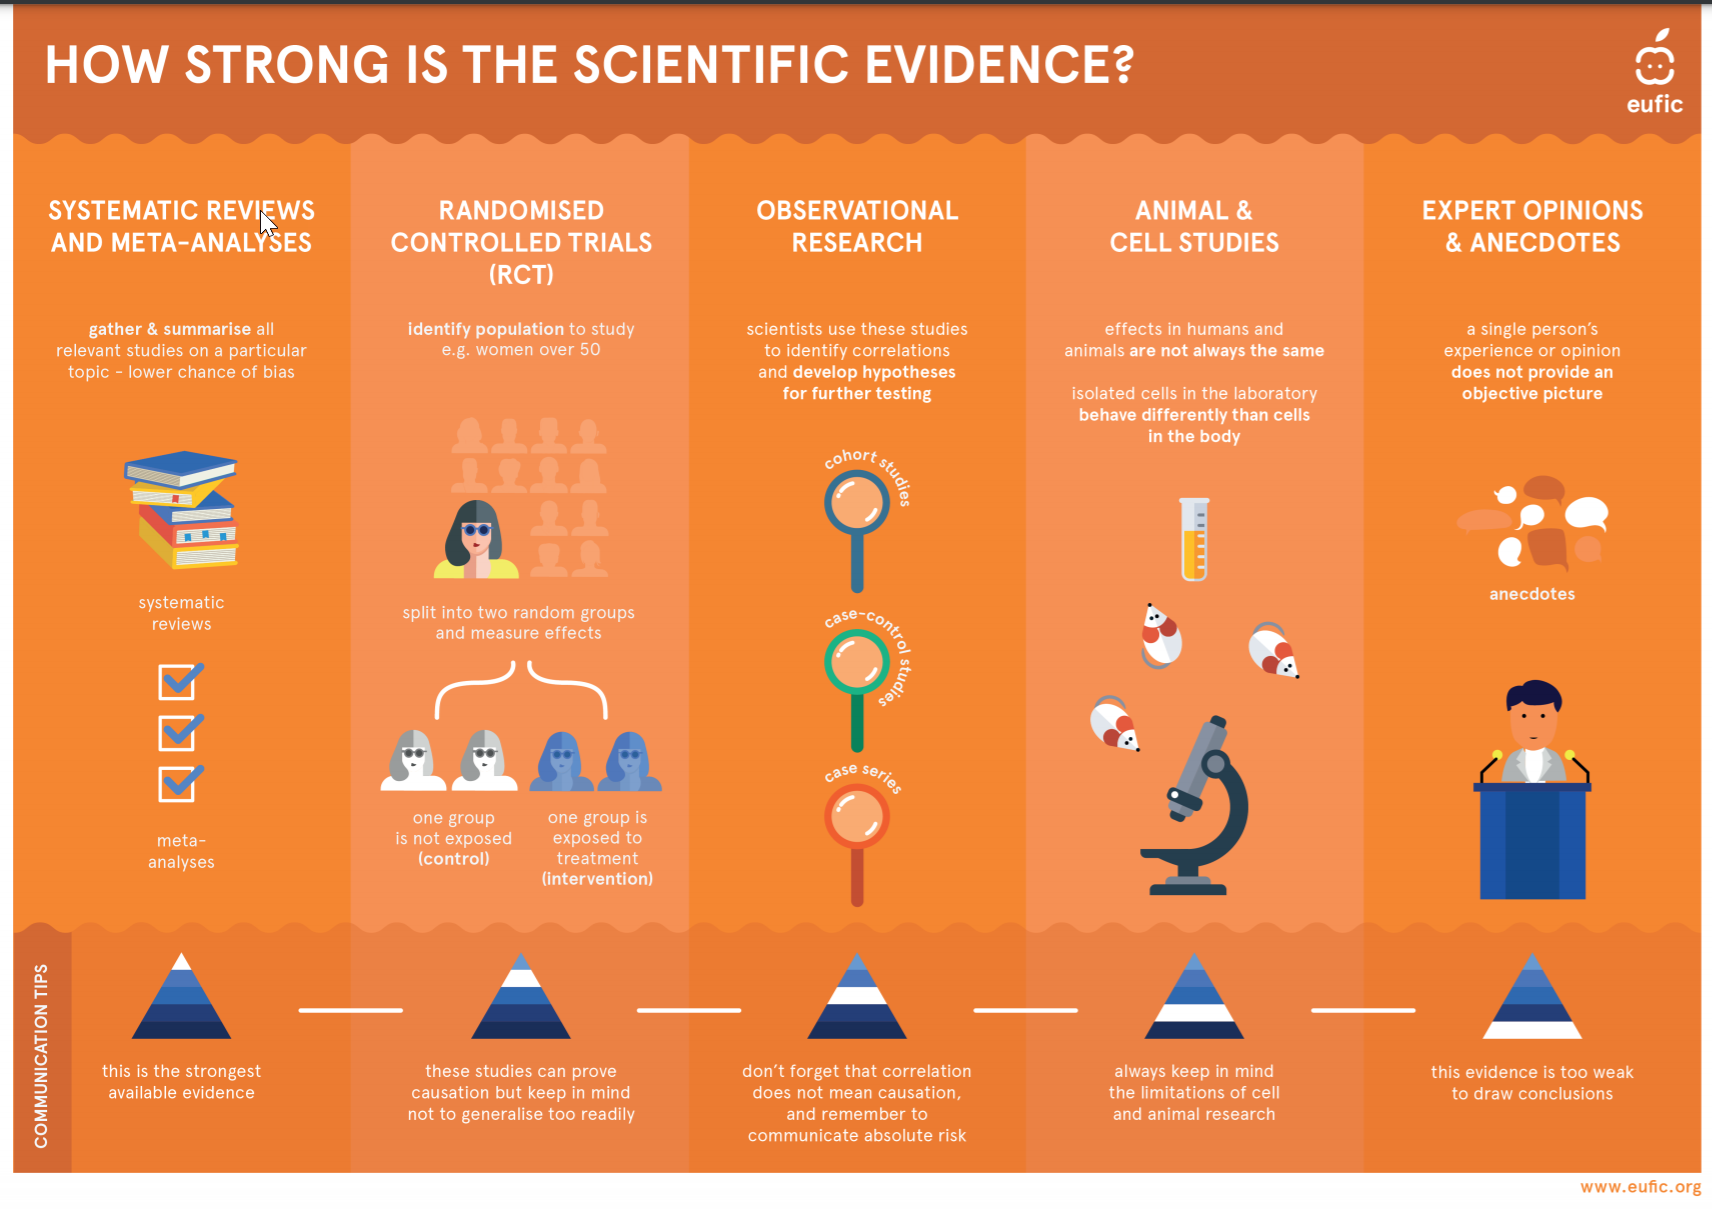 How Strong is the Evidence?